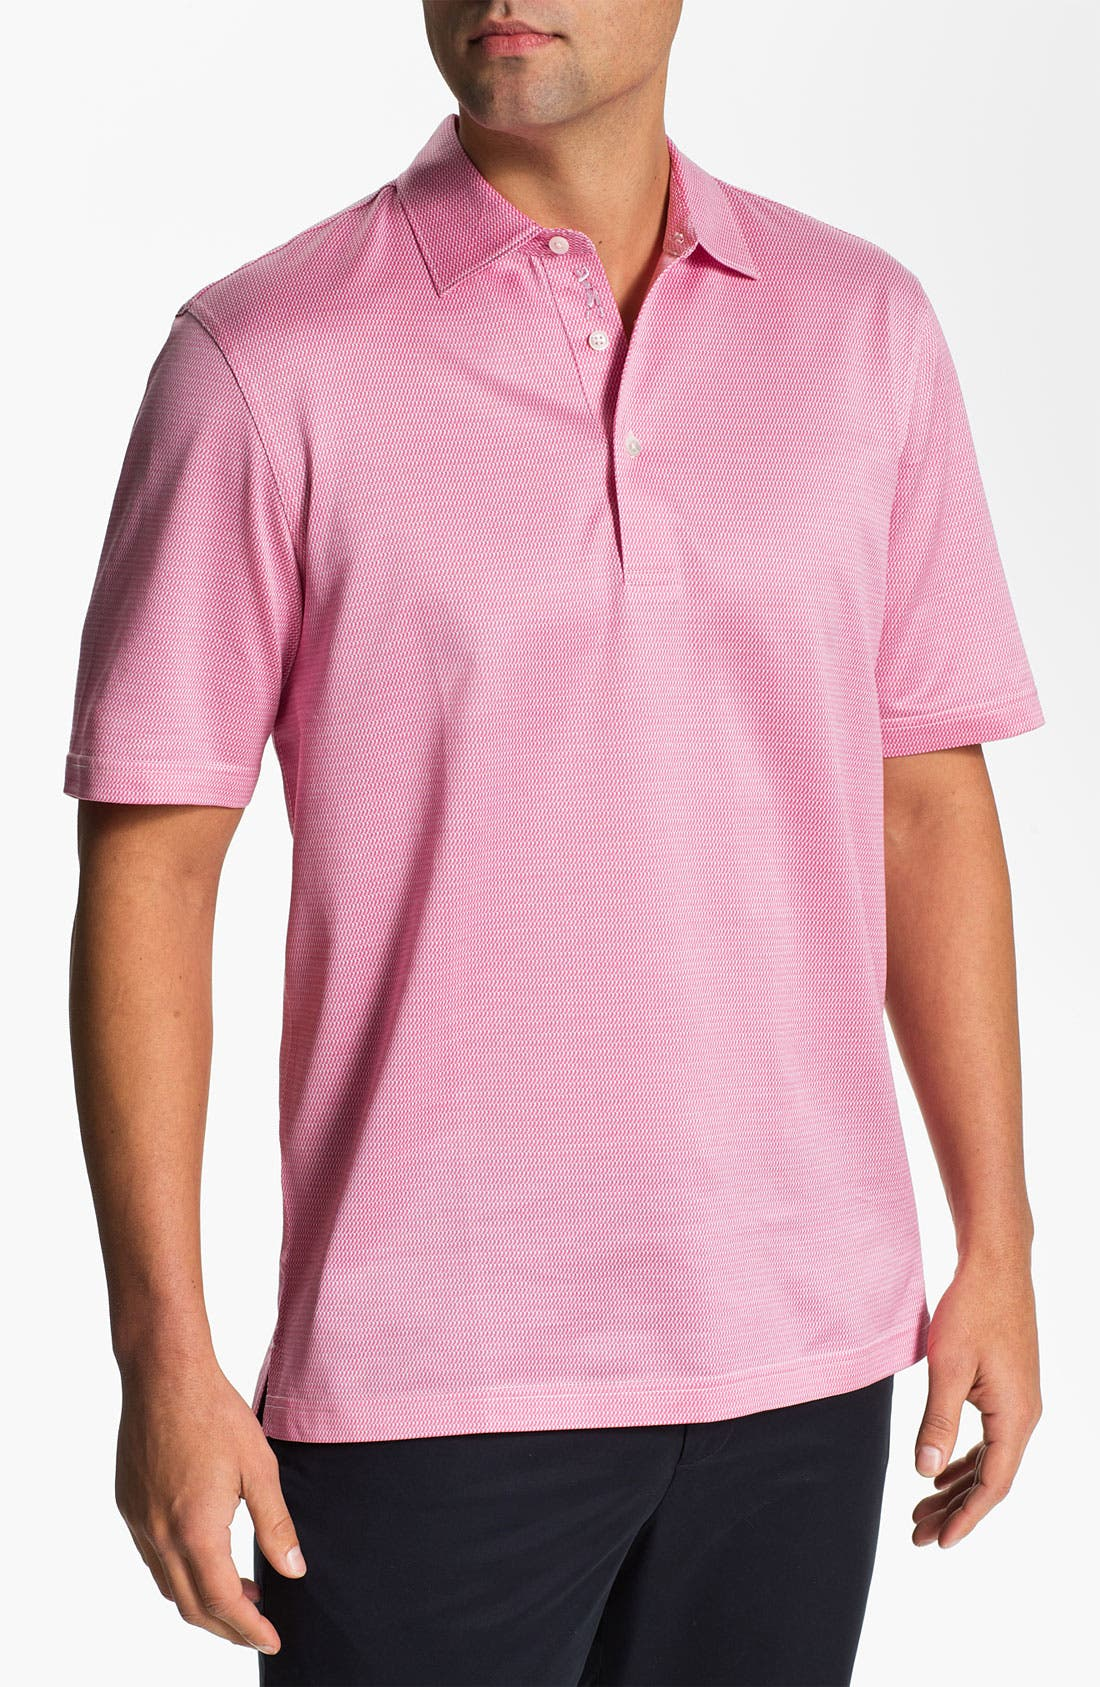 Alternate Image 1 Selected - Bobby Jones 'Staggered' Jacquard Golf Polo